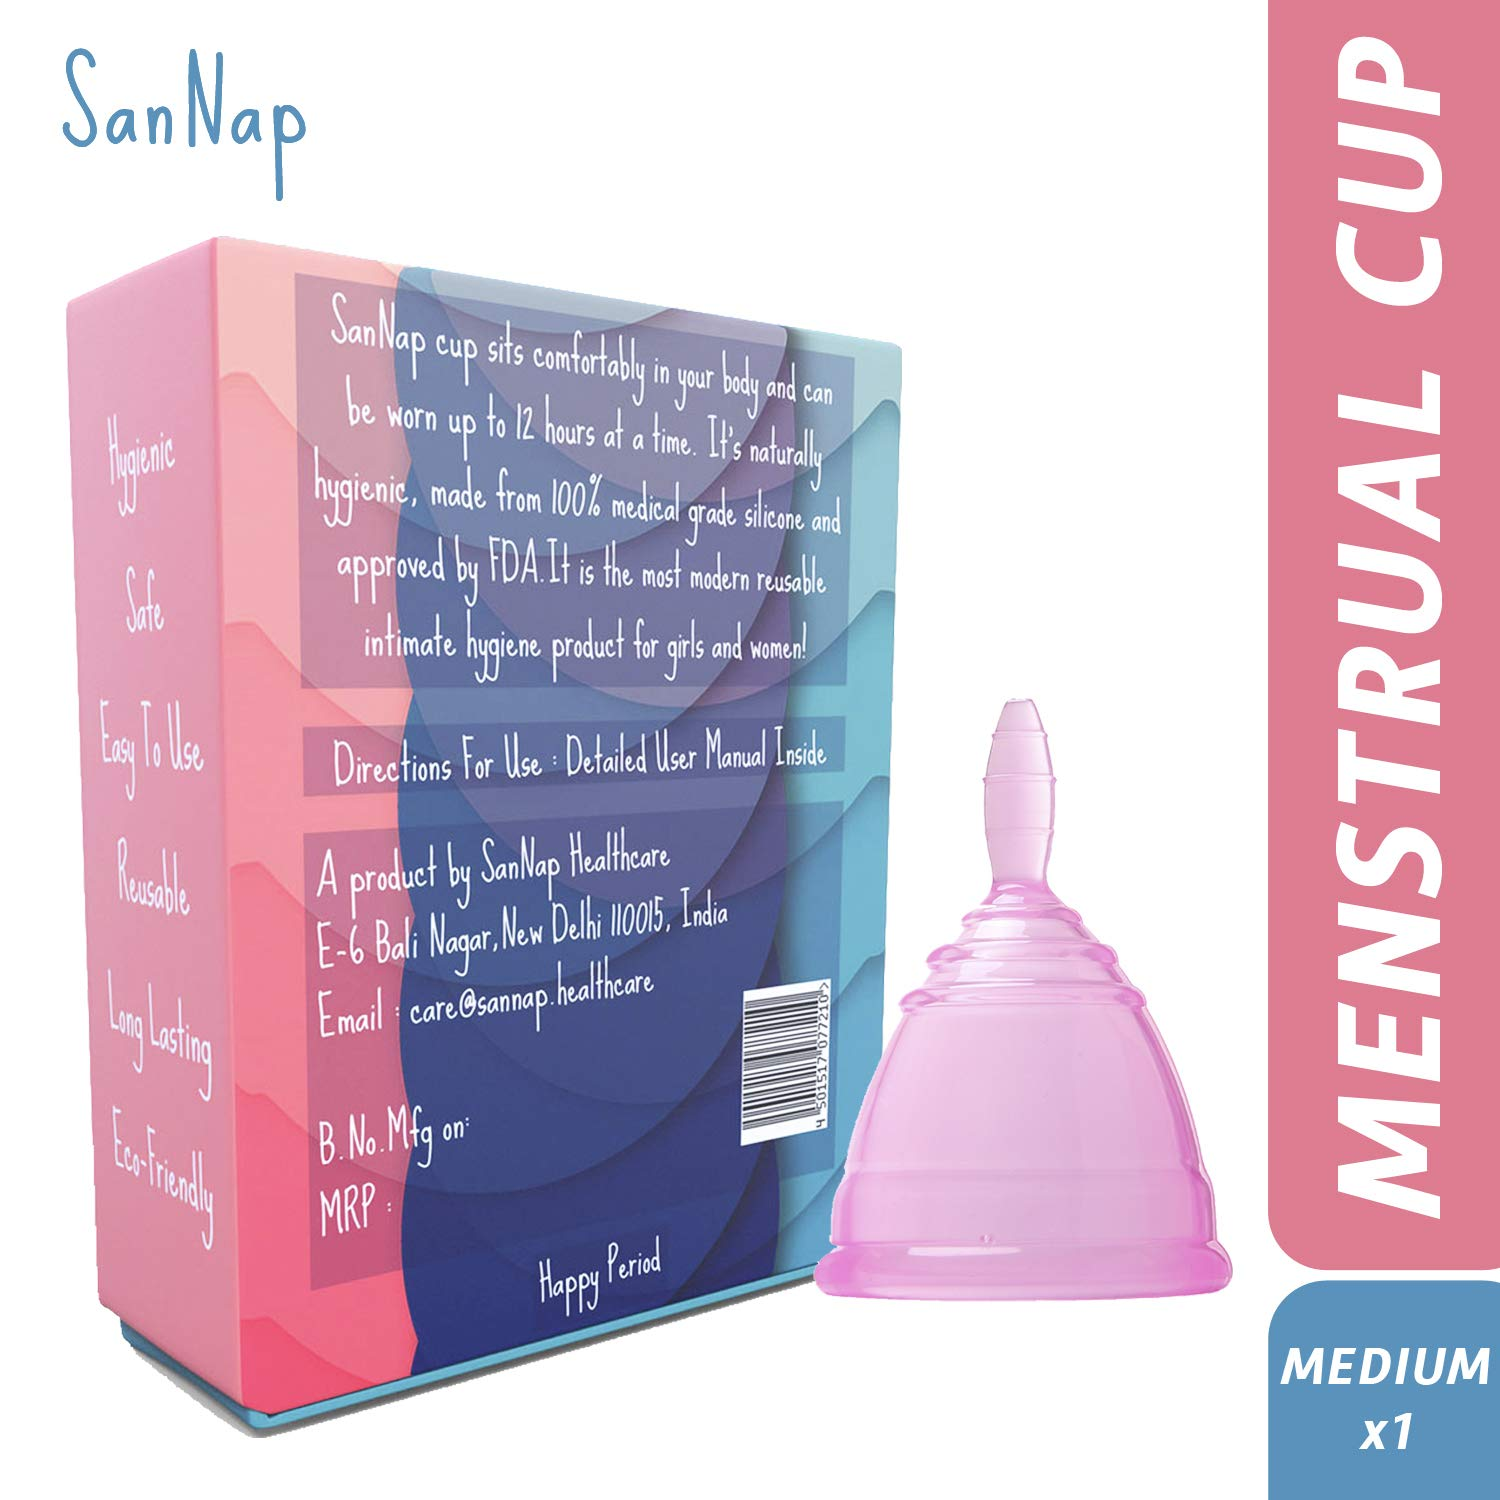 SanNap FDA Approved Reusable Menstrual Cup with Medical Grade Silicone -  Medium (Pink)